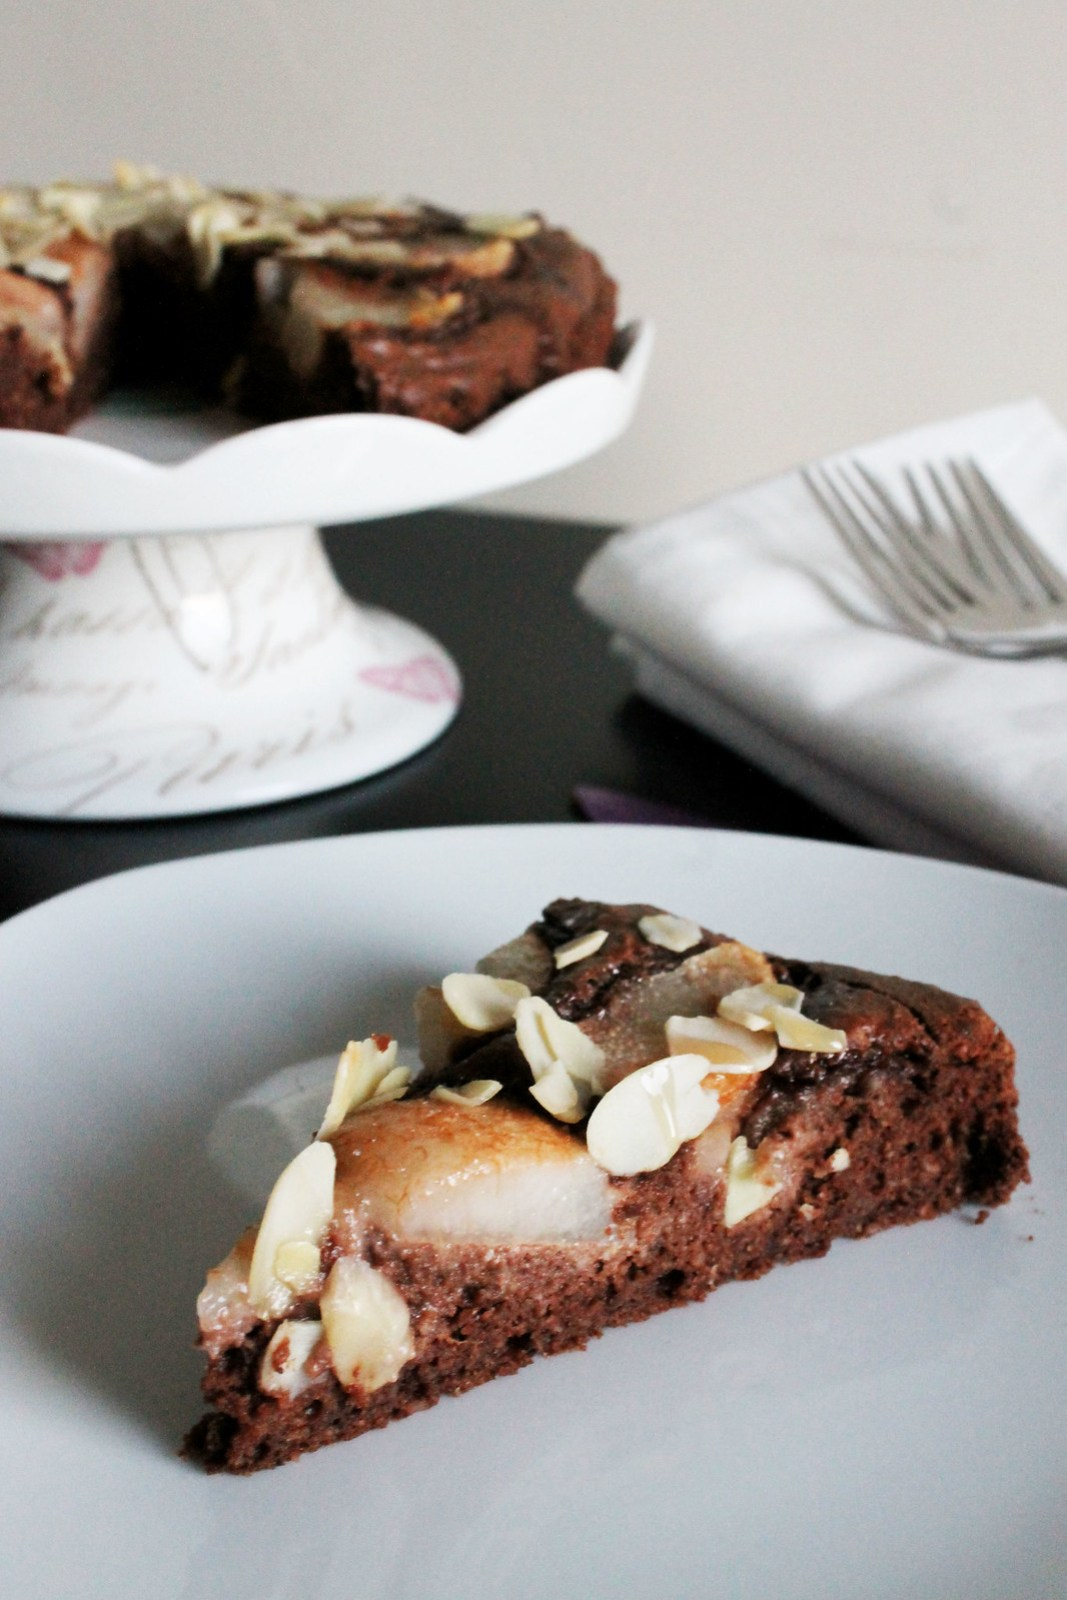 Pear and Almond Chocolate Torte